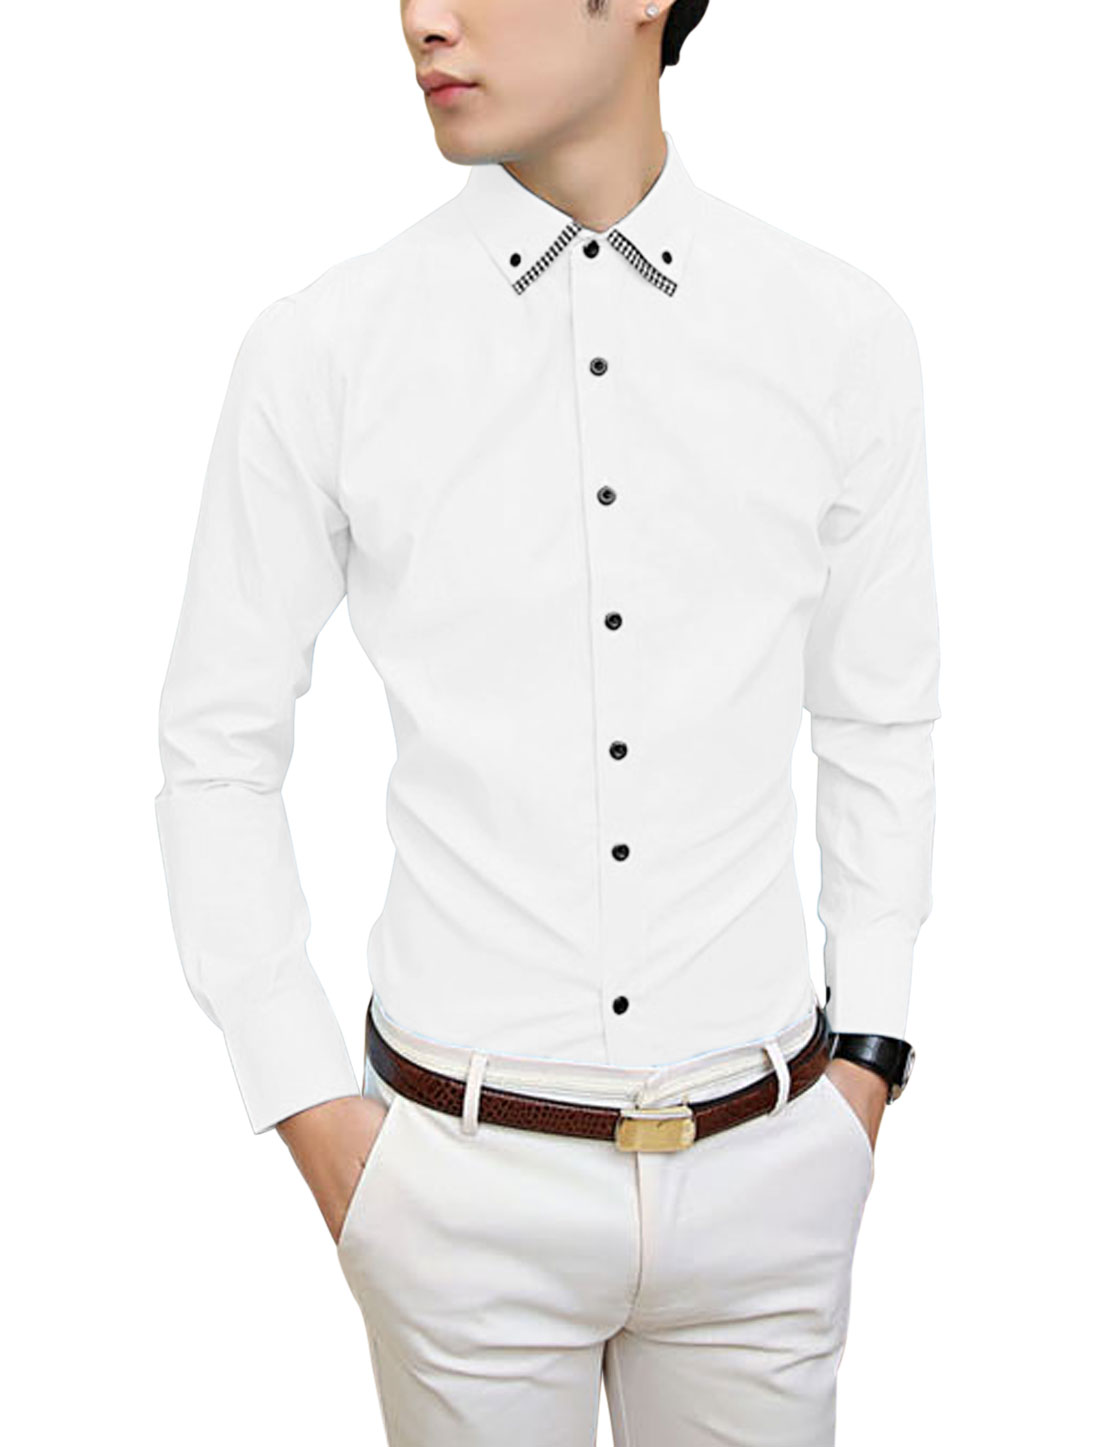 Point Collar Button Up Front Chic White Shirt for Men M